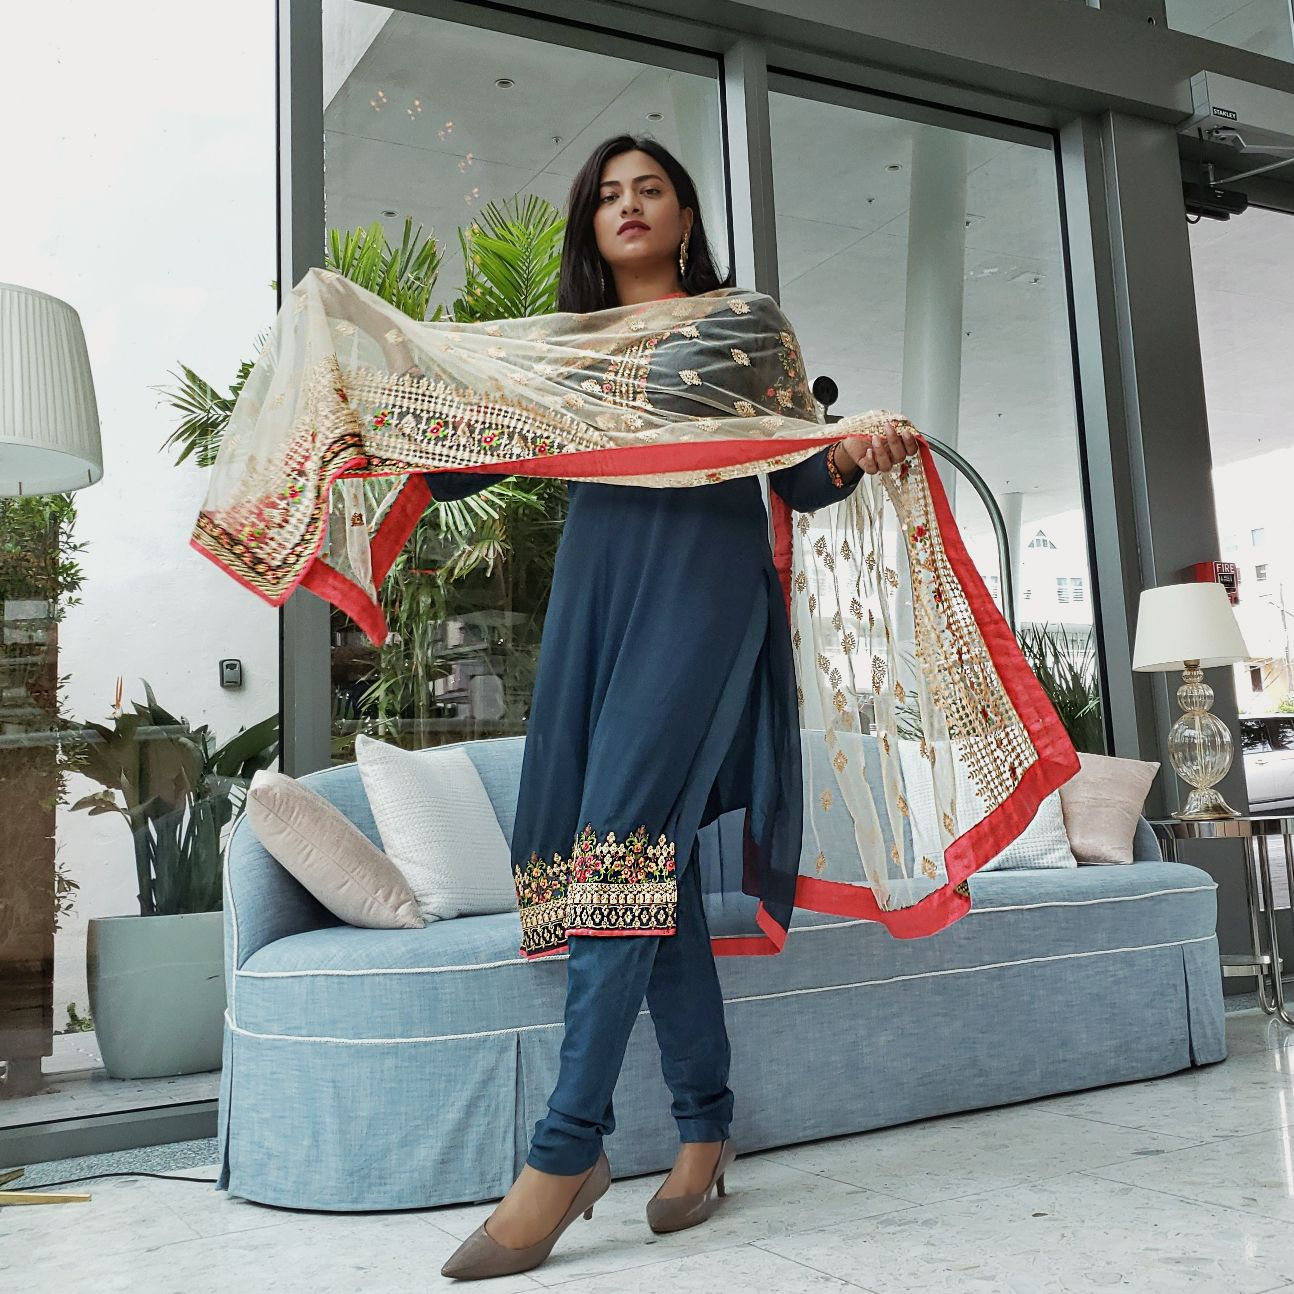 Miami Fashion Blogger Indian Style Salwar Kameez Outfit Eid